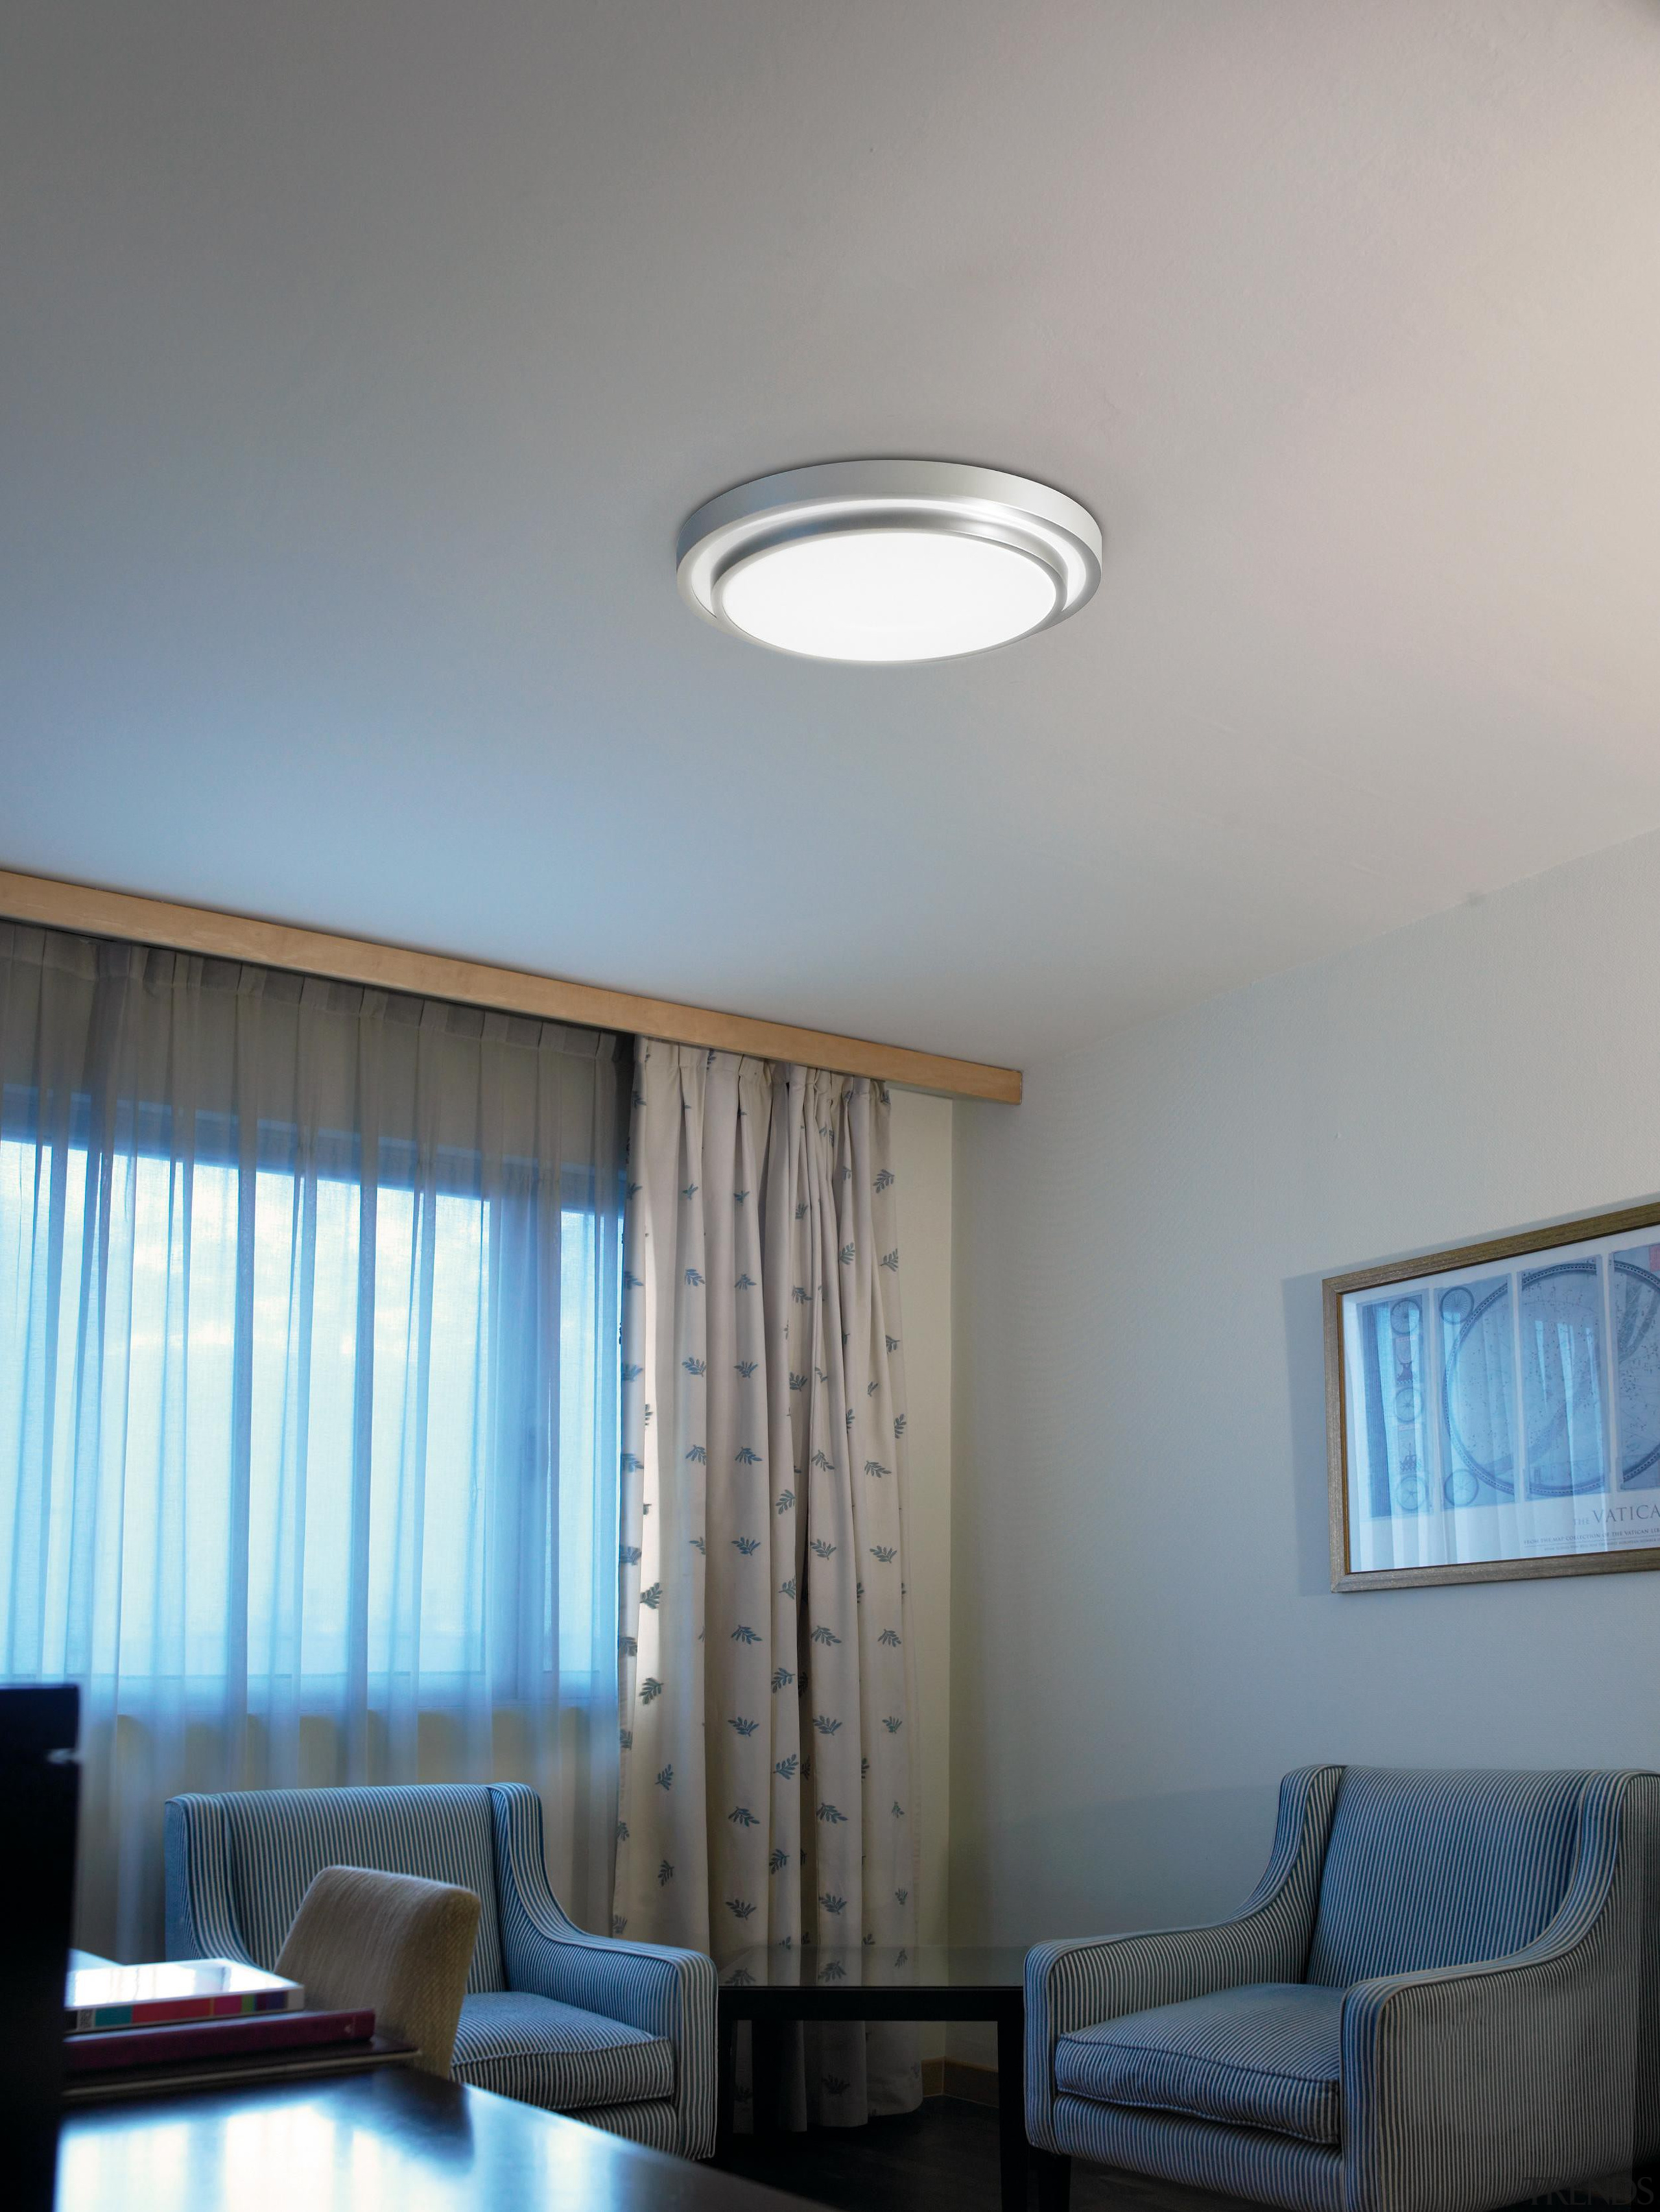 Round from La Creu, Spain - Ceiling Lights ceiling, daylighting, home, interior design, light fixture, lighting, living room, property, real estate, room, wall, window, window covering, gray